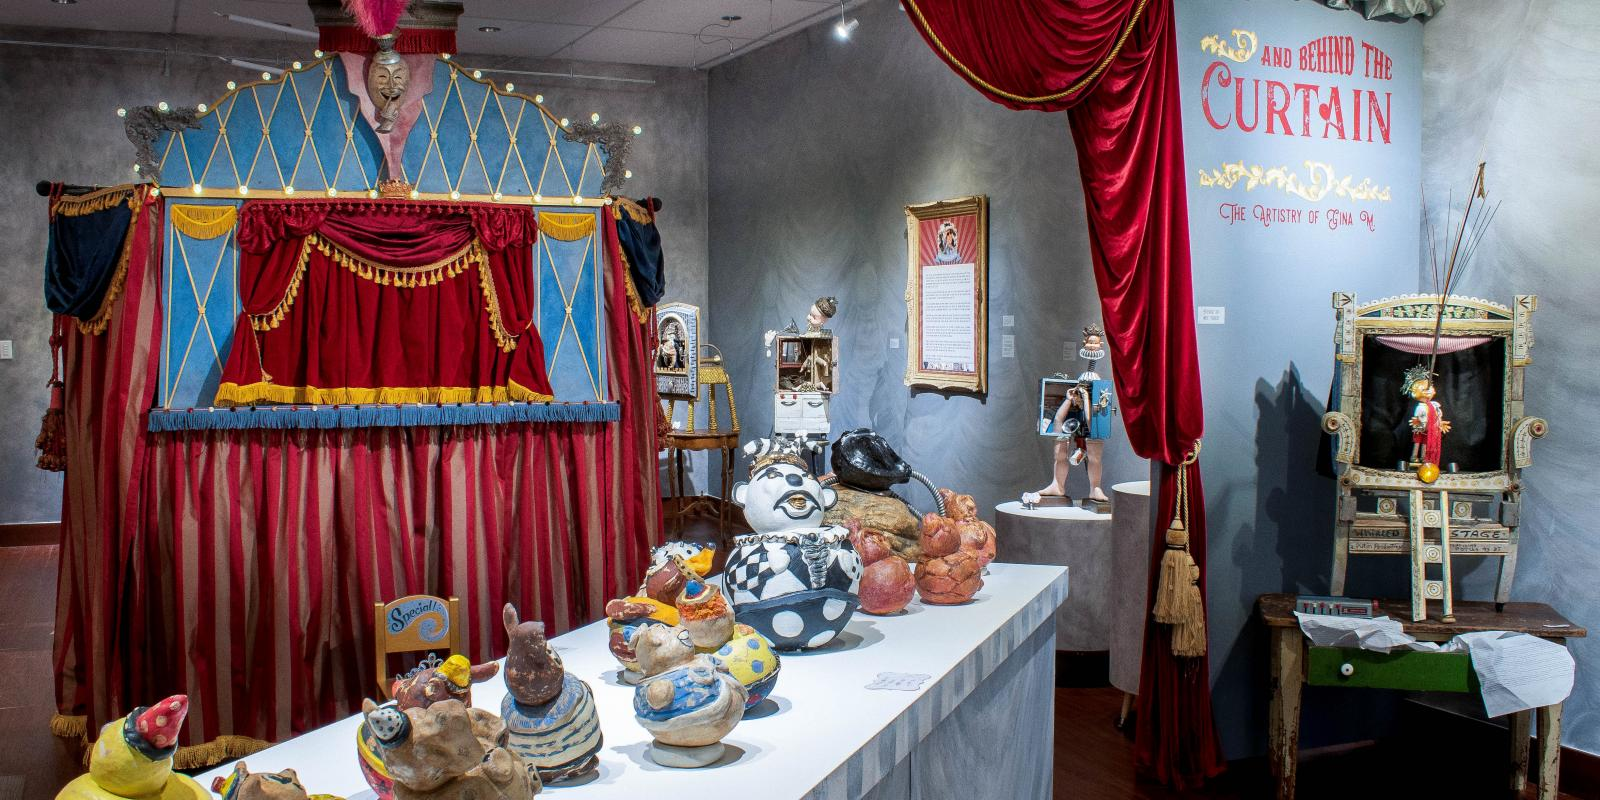 Current 2020 Exhibition - Through the Toy Shop and Behind the Curtain: The Artistry of Gina M.